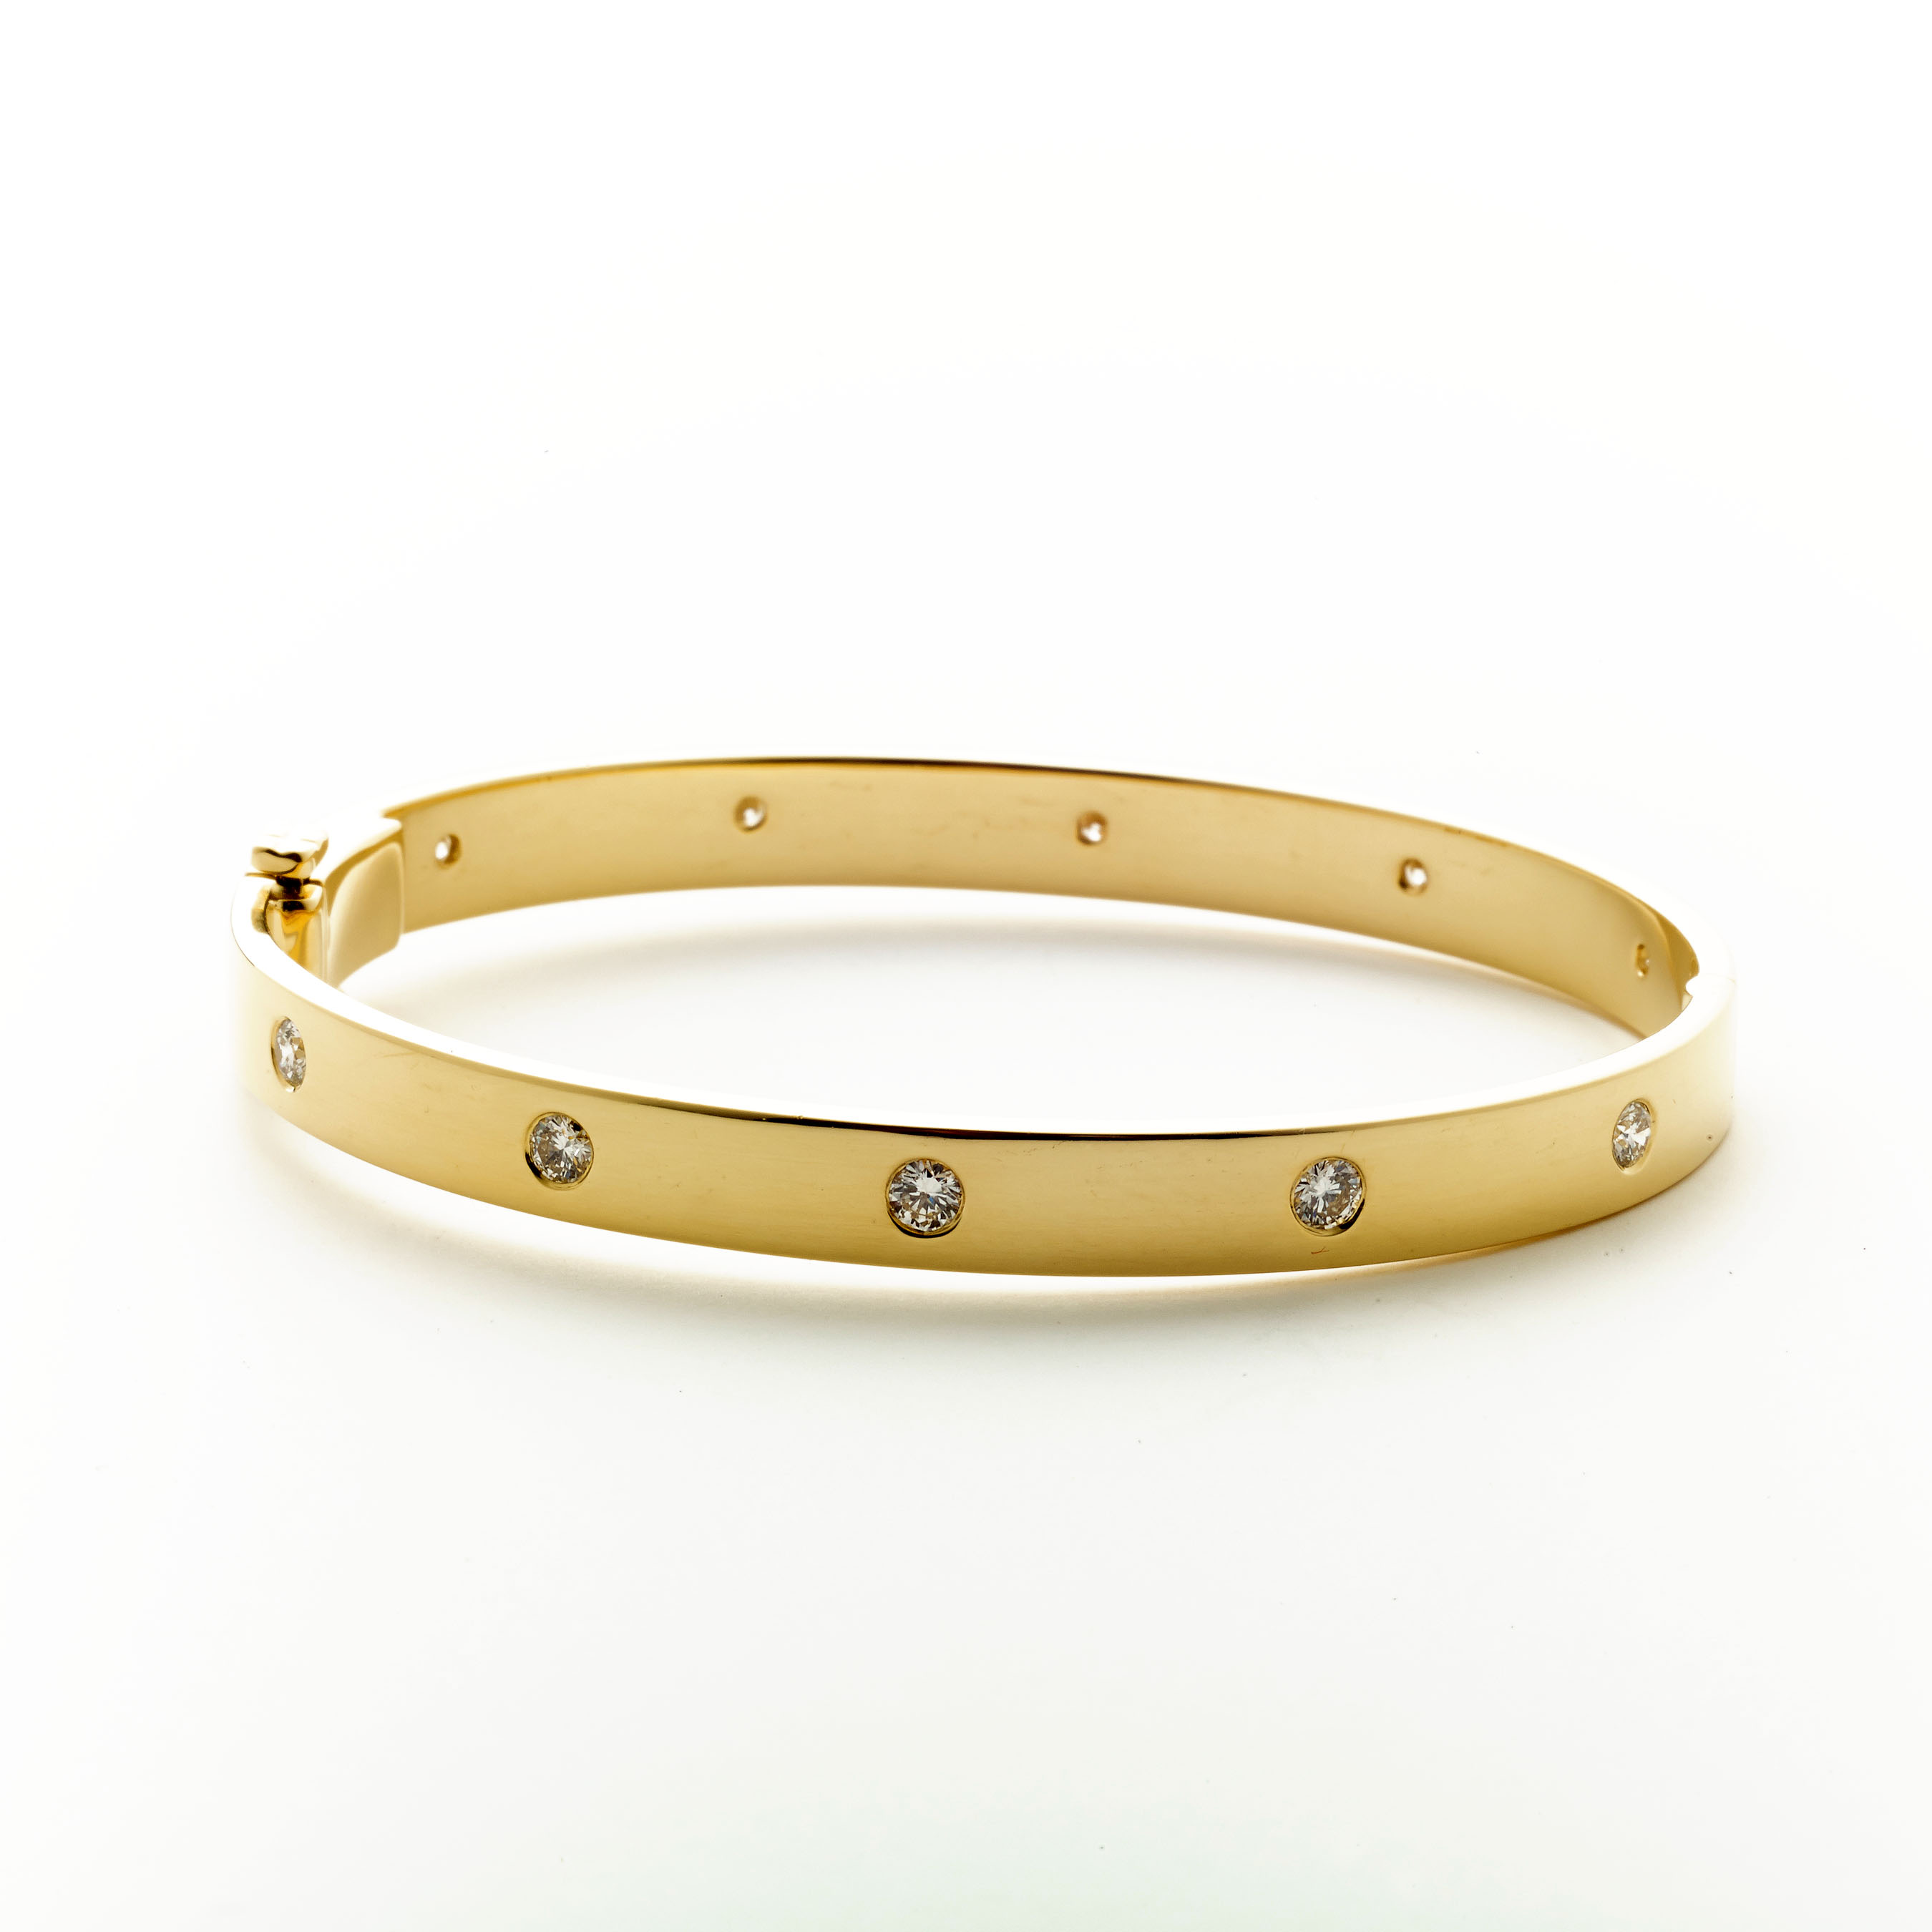 online design product the banks for james bracelet monocle women buy gold monoclebracelet